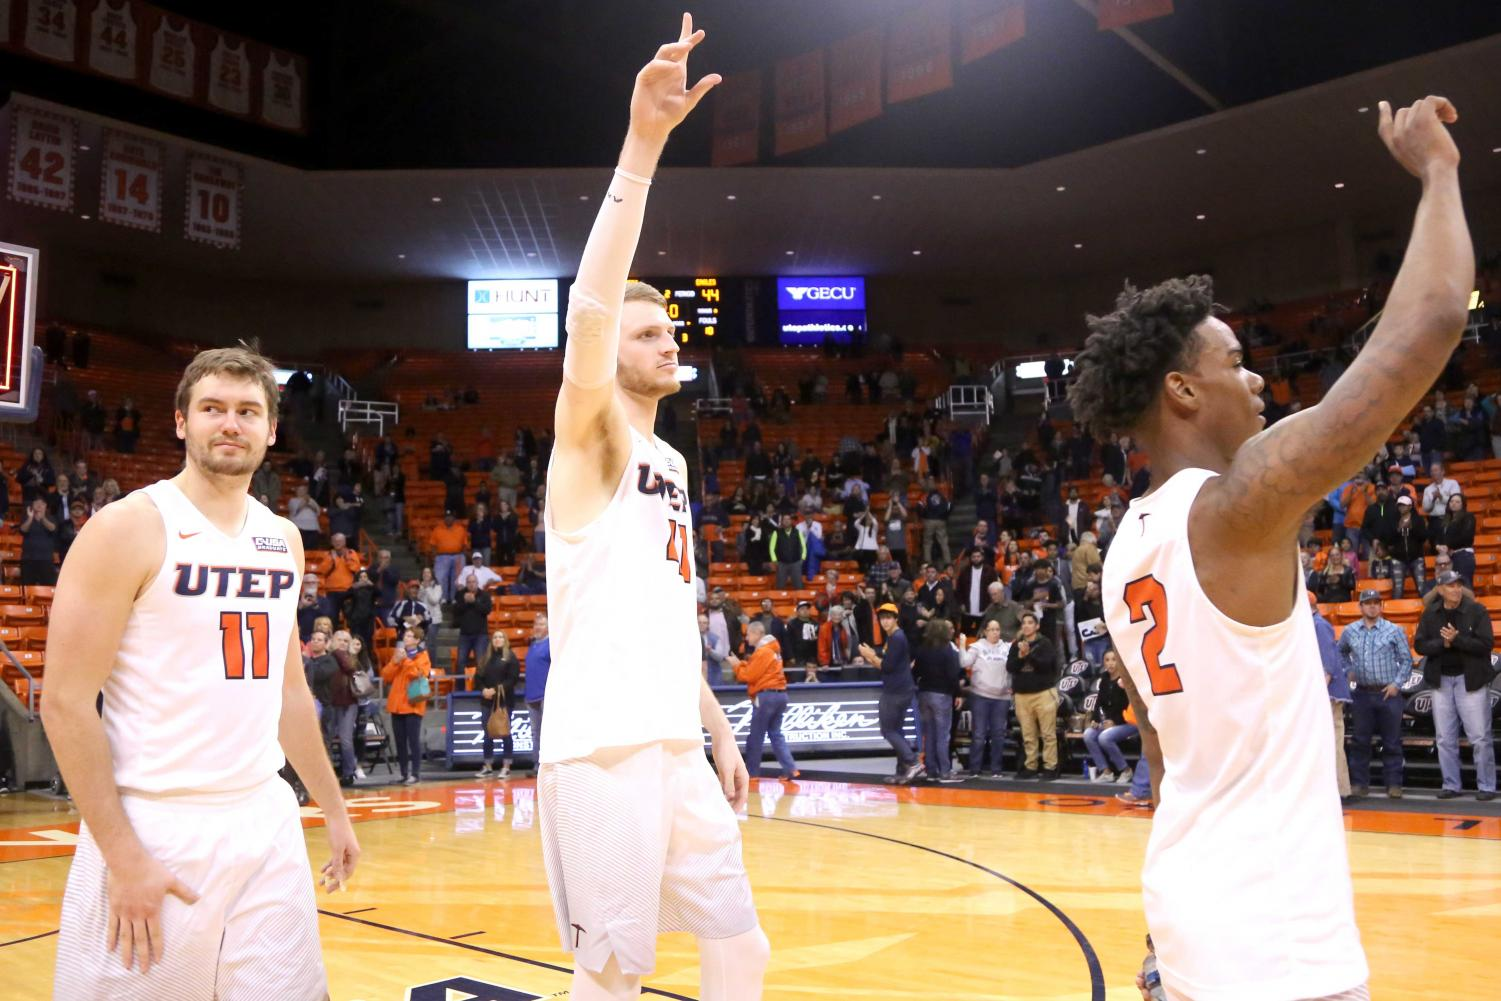 Jake Flaggert (left), Matt Willms (middle) and Omega Harris (right) won their last home game at the Don Haskins Center against Southern Mississippi, 73-44 on Feb. 24.